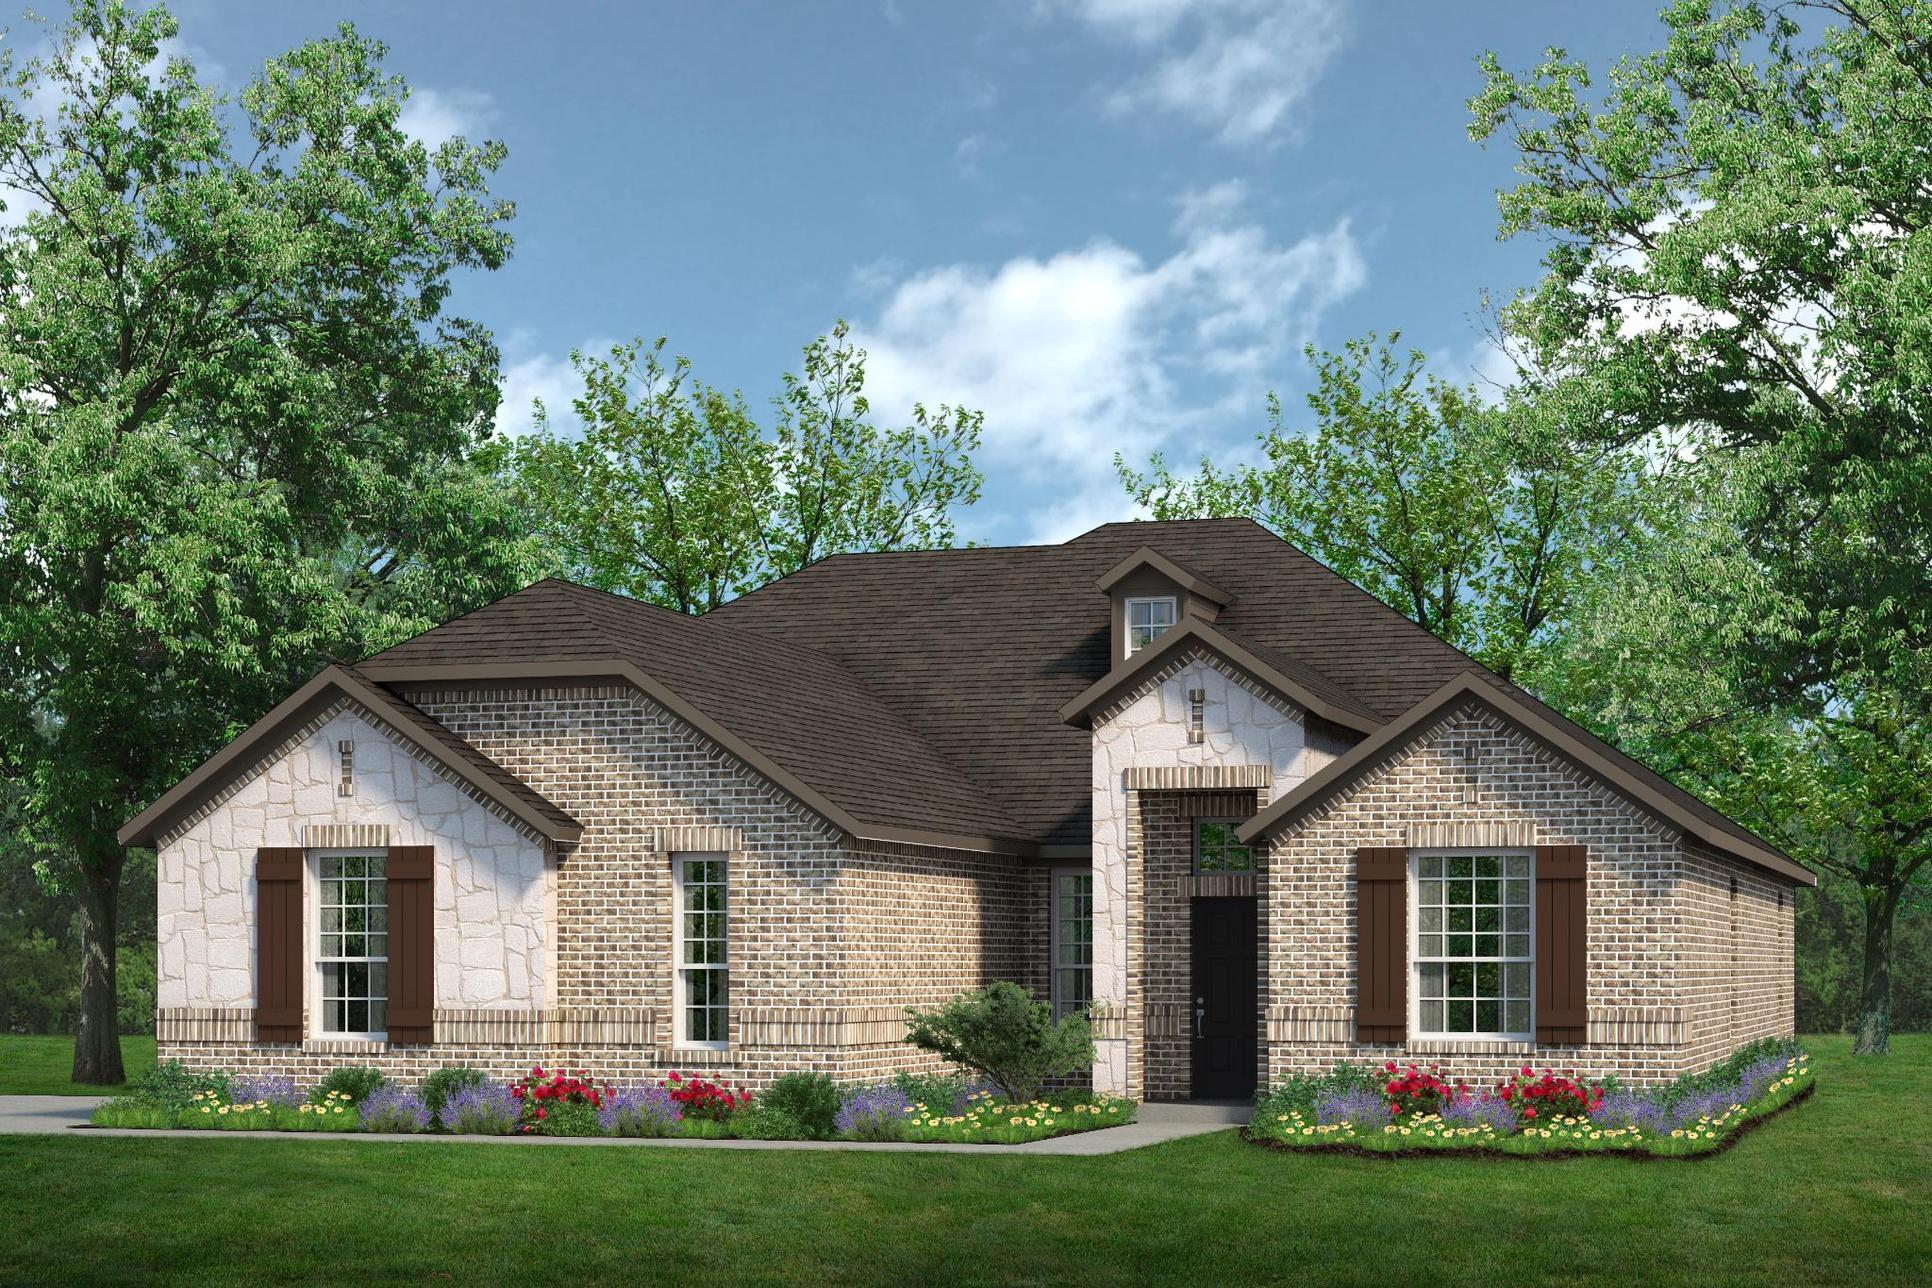 Exterior:2555 A with Stone